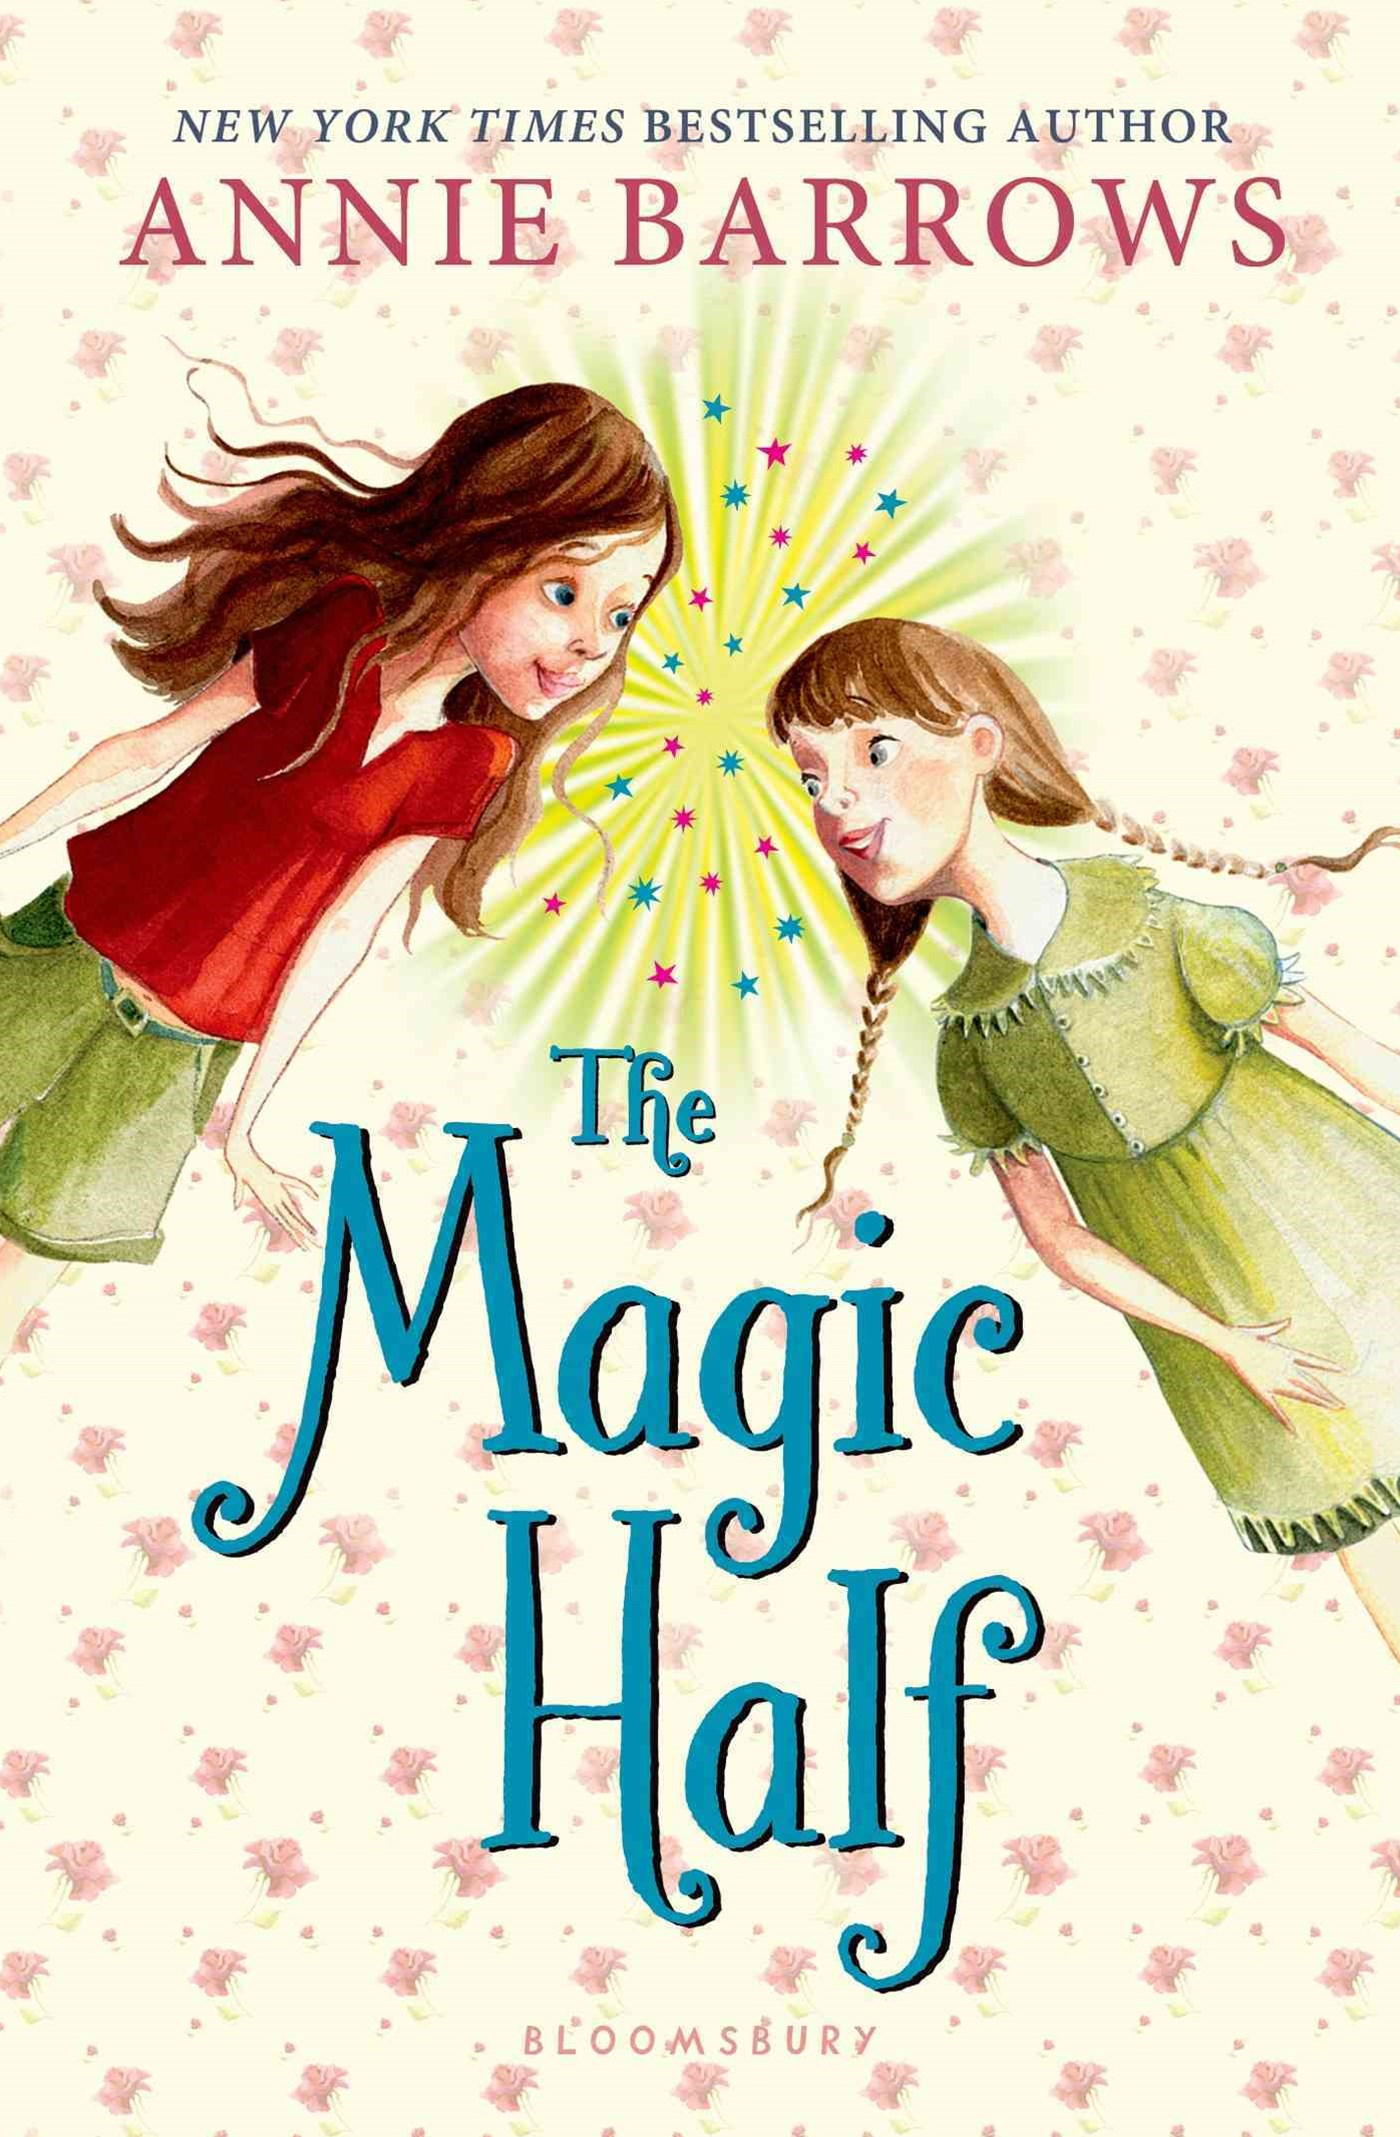 The Magic Half